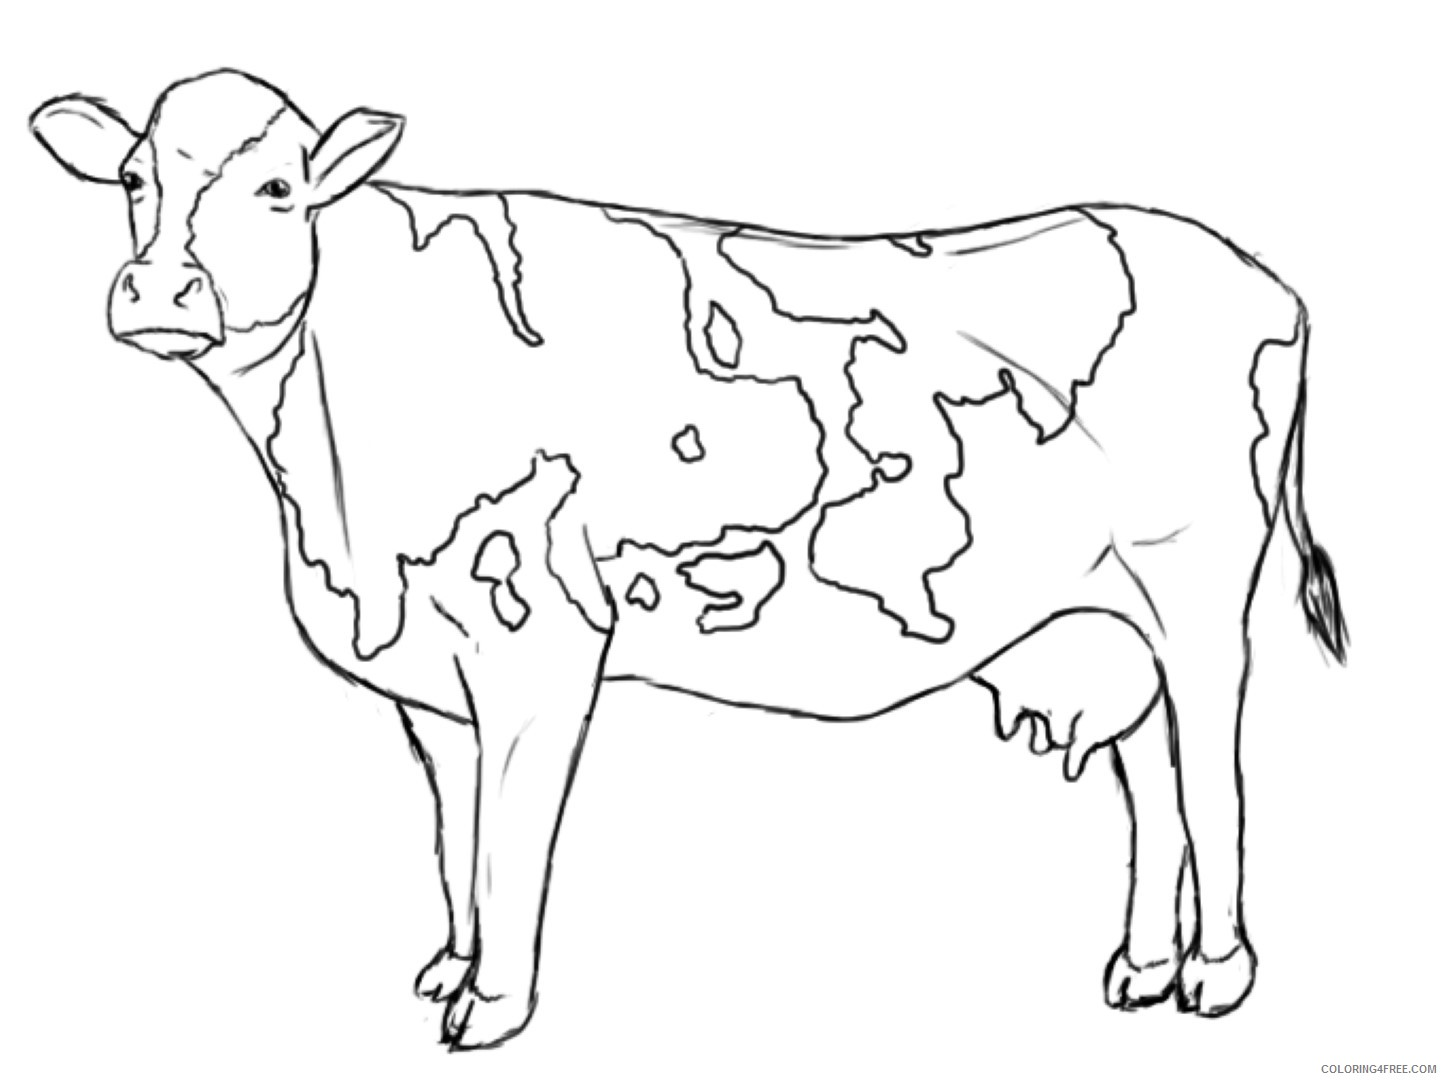 cow coloring pages printable Coloring4free